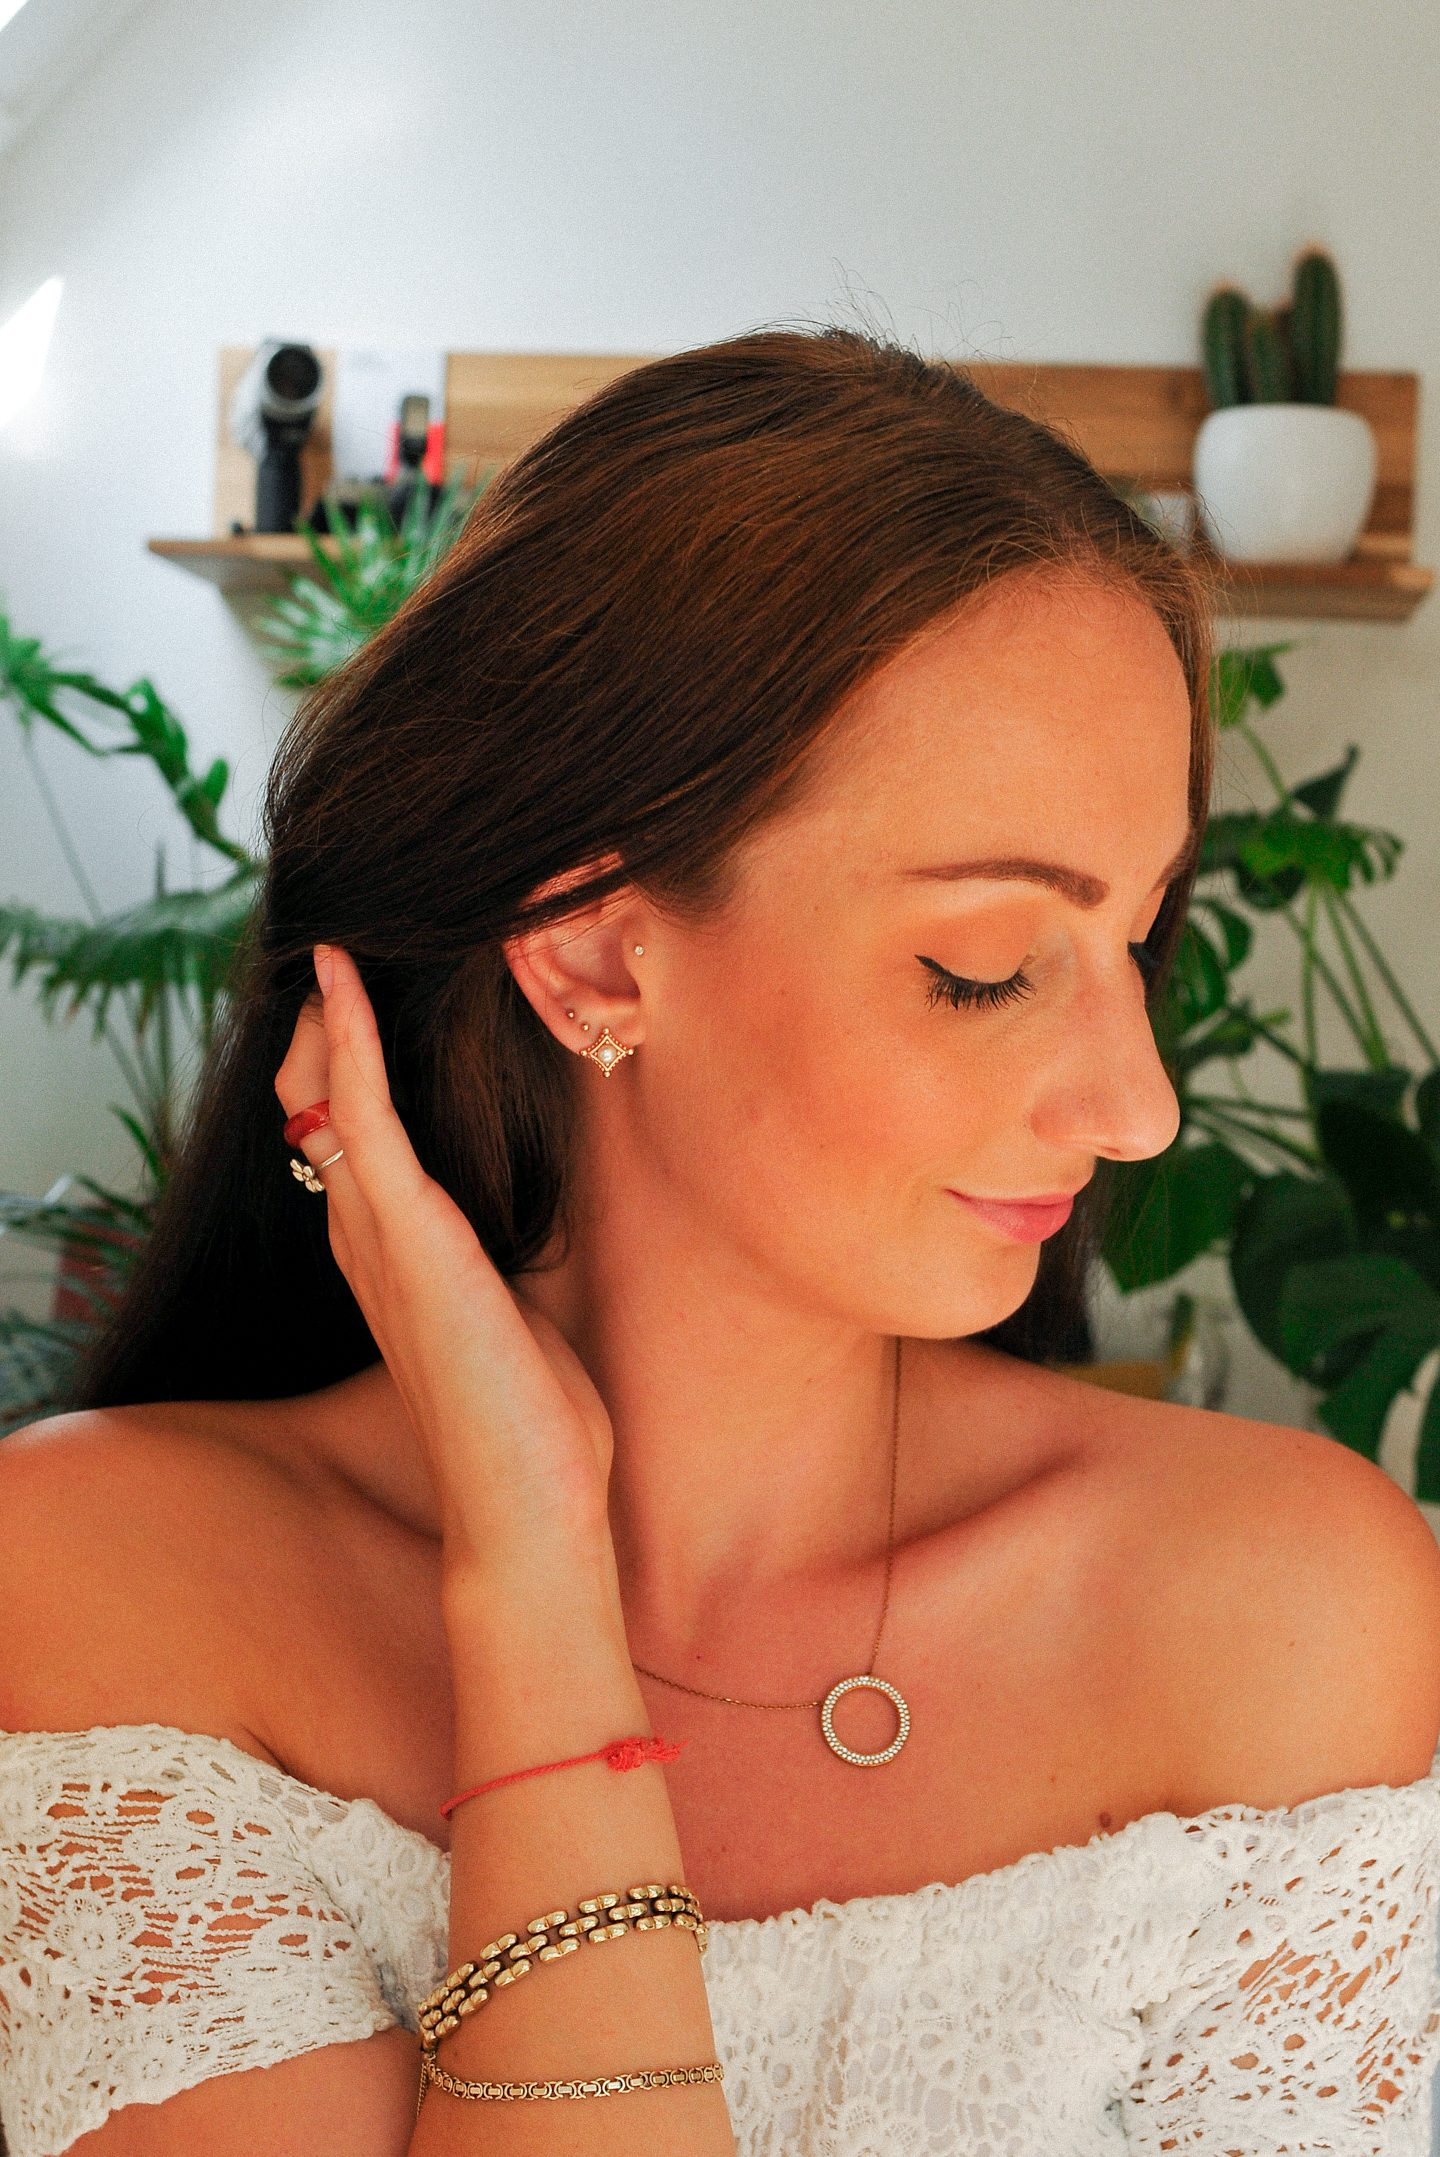 Ear Party oorbellen rosé goud Lifestyle by Linda